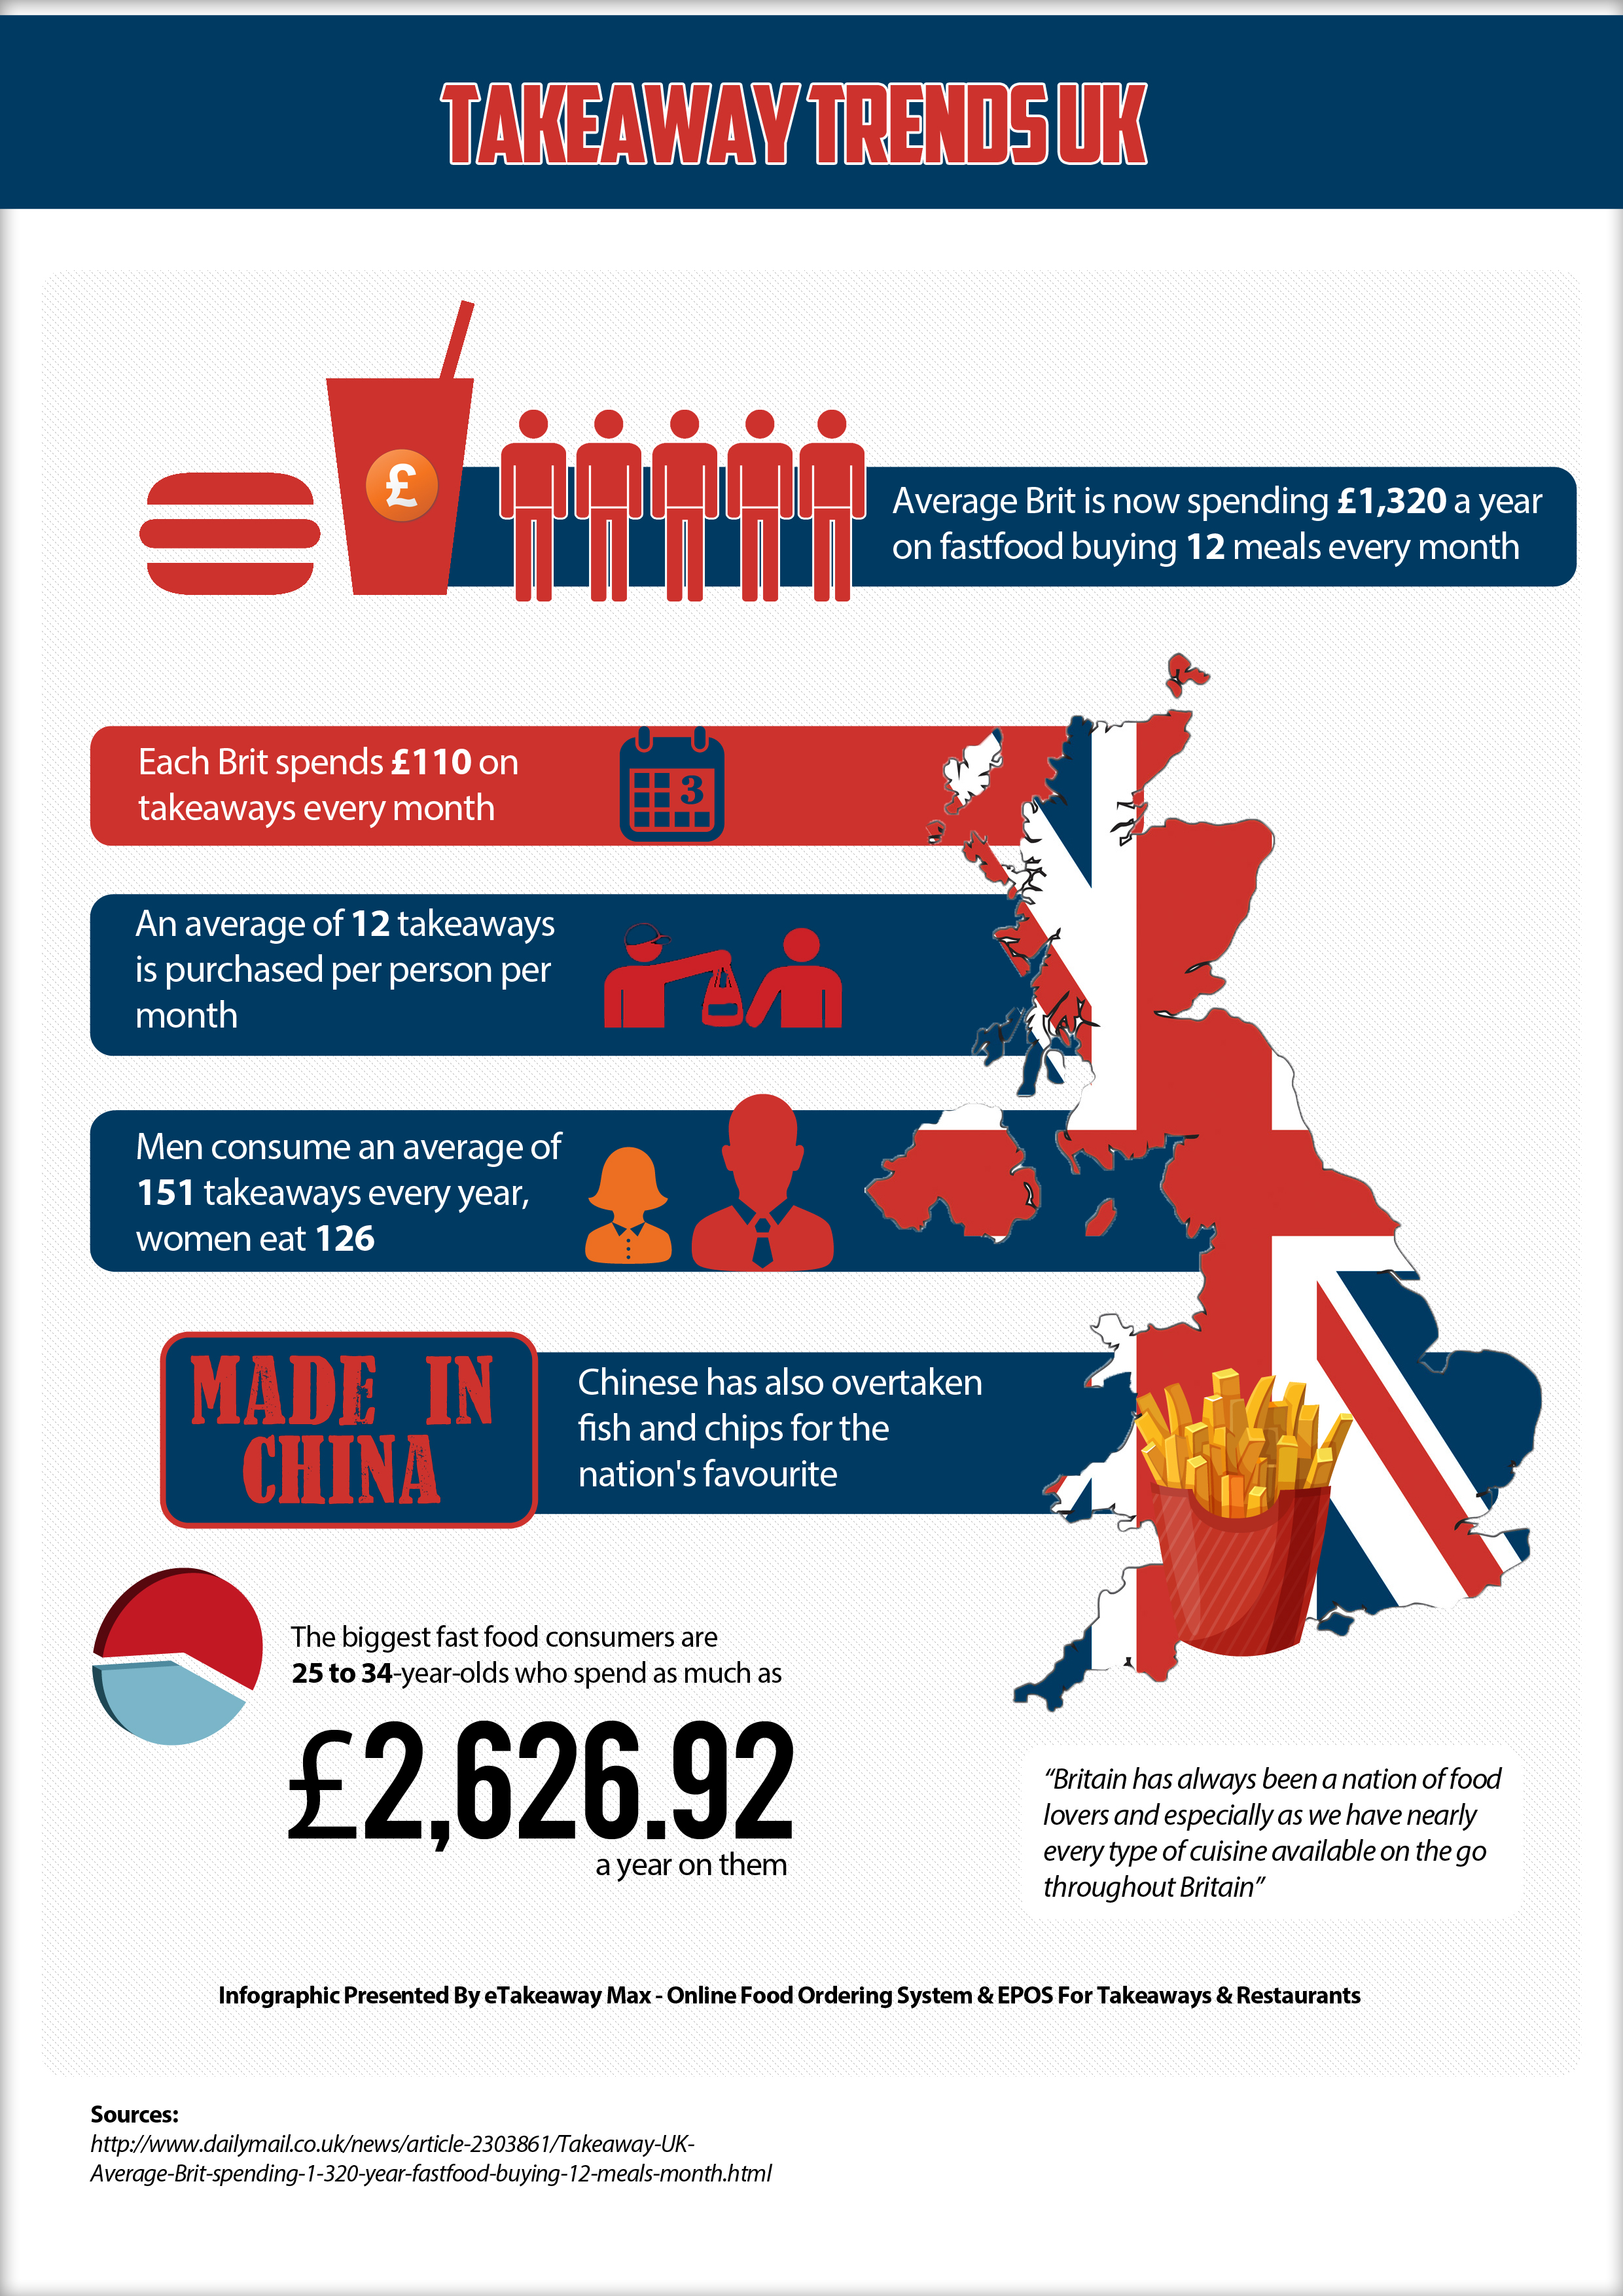 Takeaway Market Trends UK